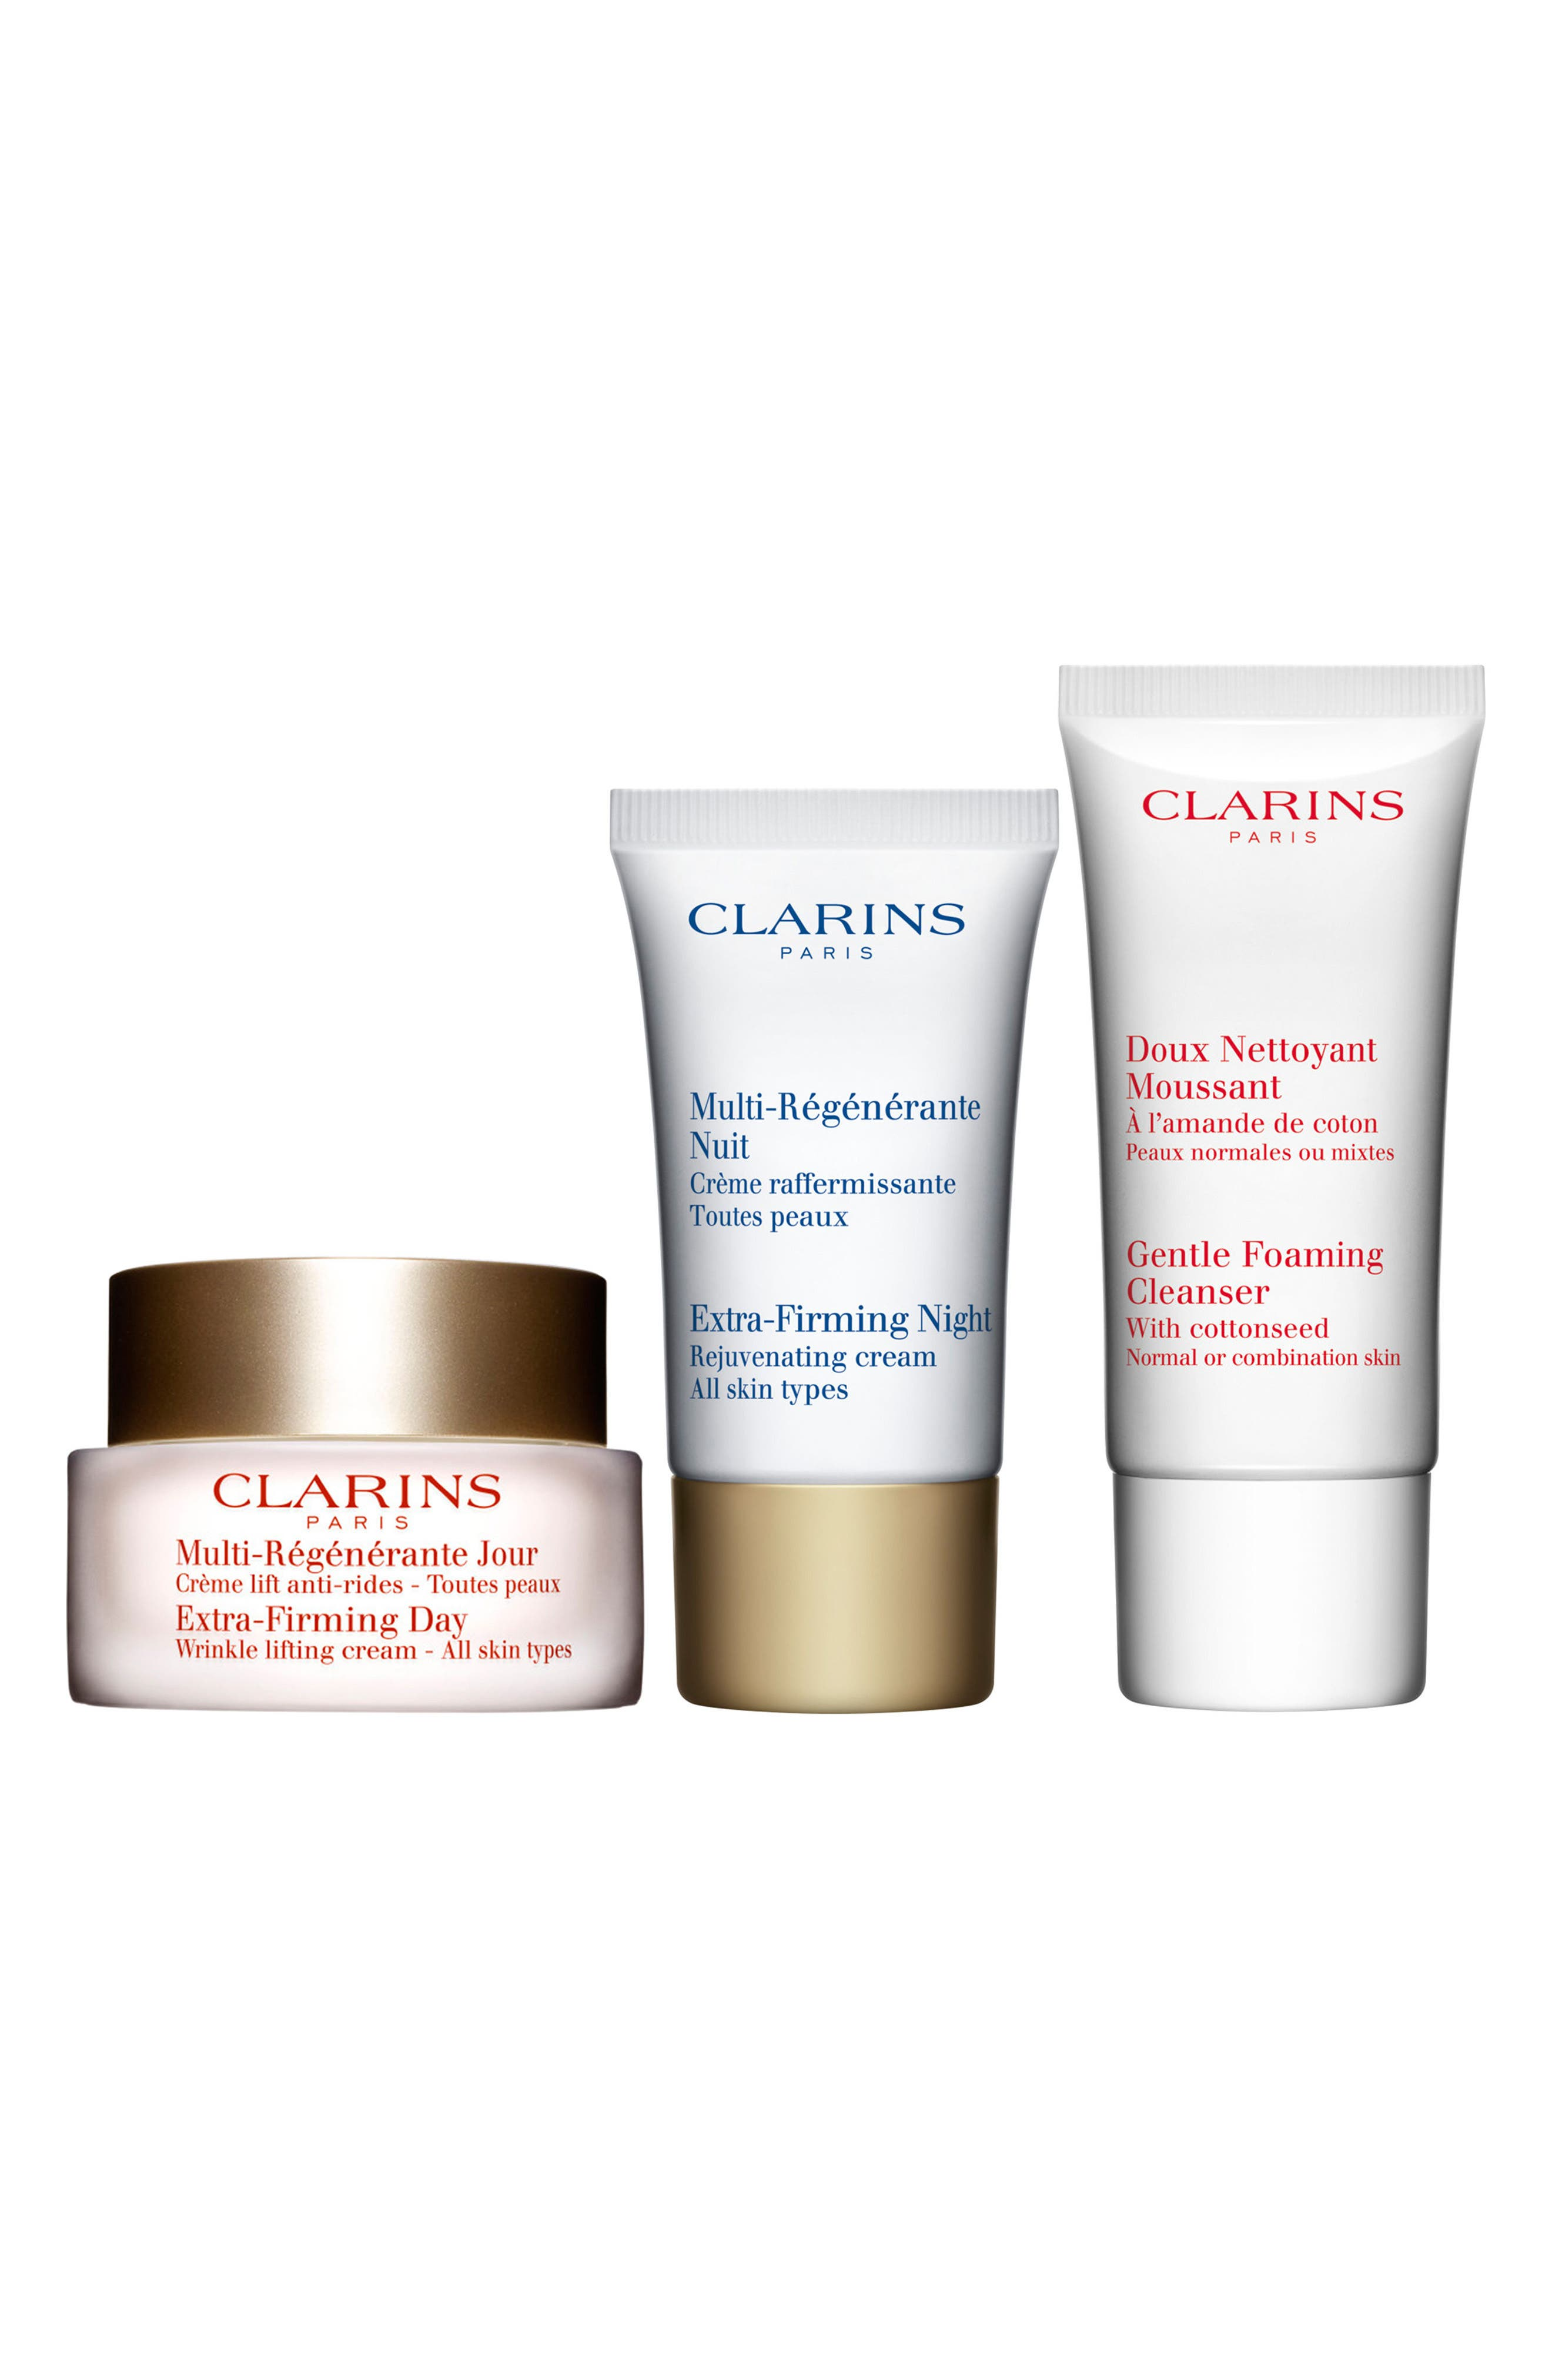 Clarins Extra-Firming Skin Starter Kit (Over $121 Value)